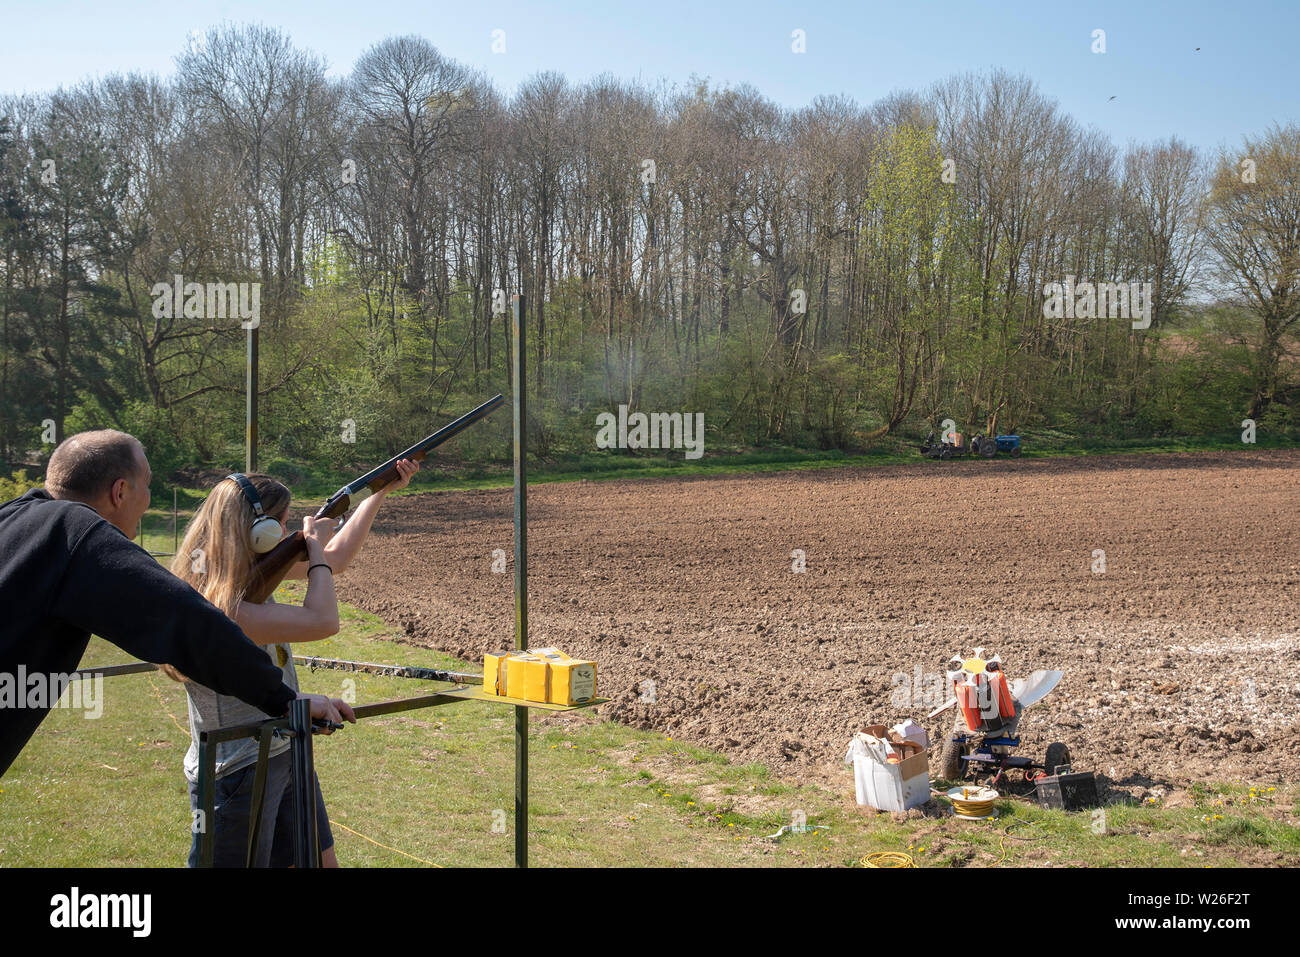 Women at a clay pigeon shoot - Stock Image